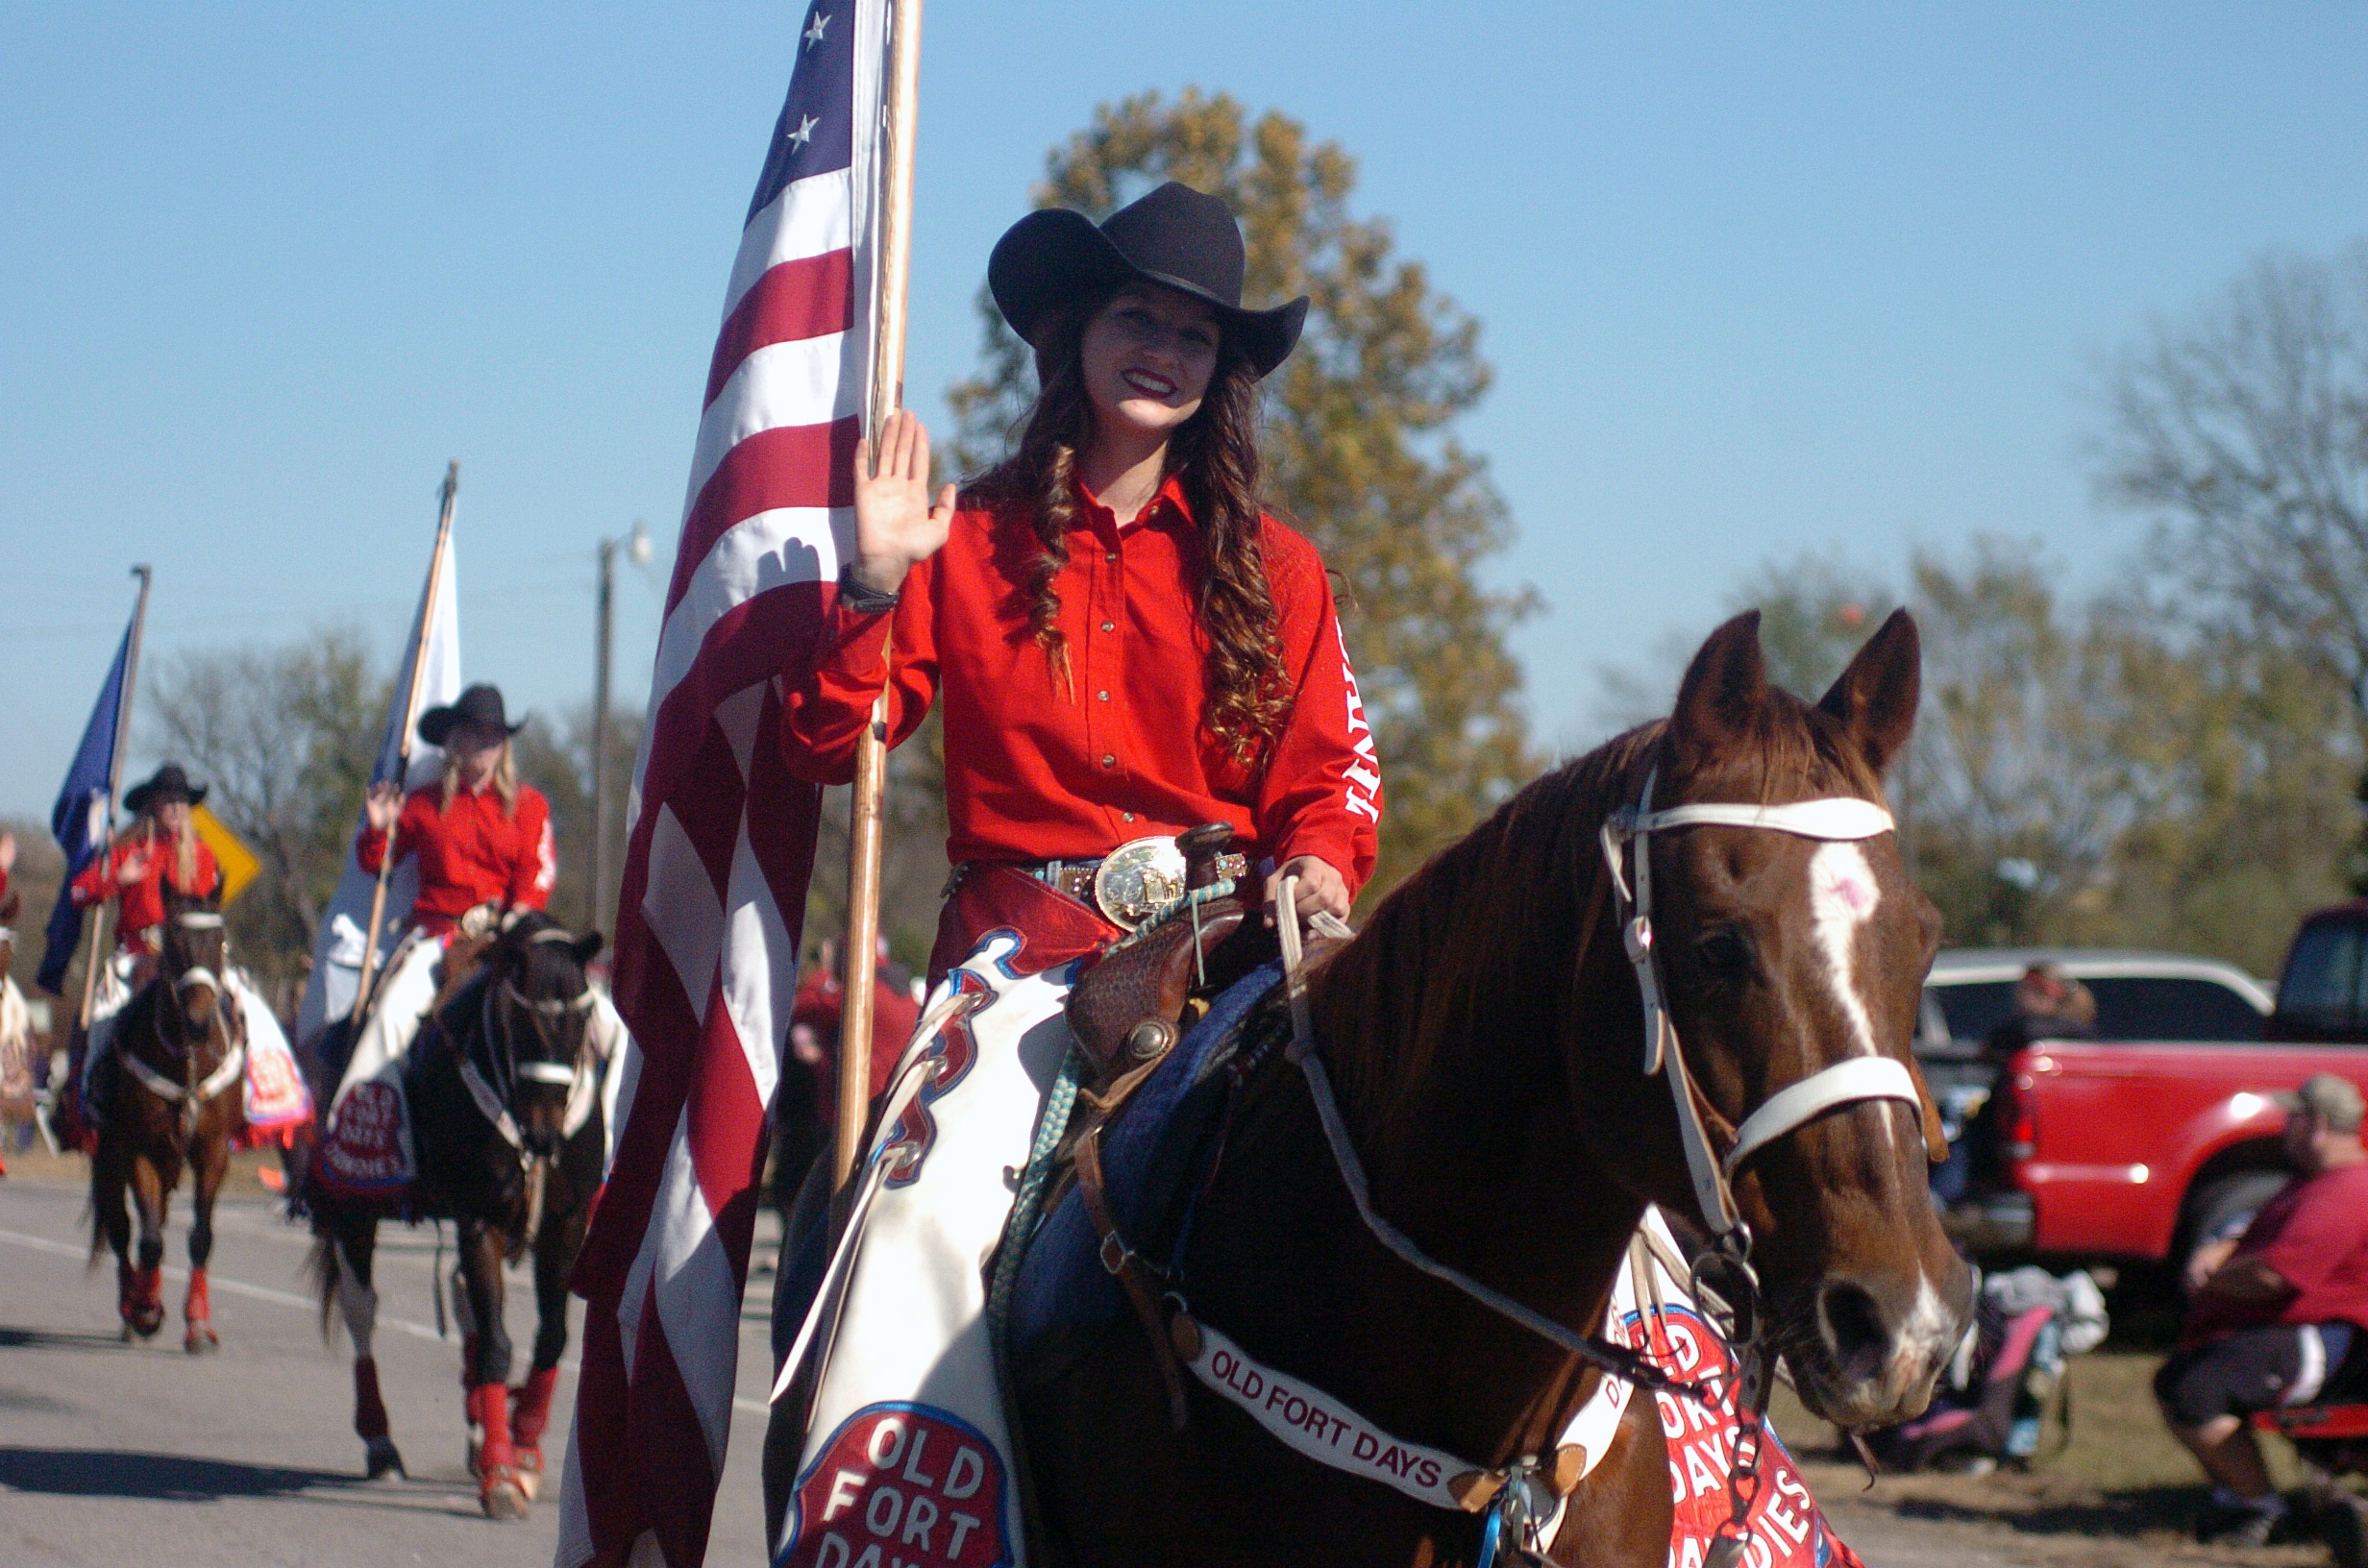 "A member of the Fort Smith Dandies rides down the road at the fifth annual Veterans Day Parade at Chaffee Crossing was held on Saturday, November 12, 2016 at the Chaffee Crossing Historic District in Fort Smith. The parade's theme was ""Women In The Military,"" and was held to honor veterans from all branches of service and all U.S. wars. (Please include credit when using this photo) STEVE MARQUEZ/StMarq Photography"